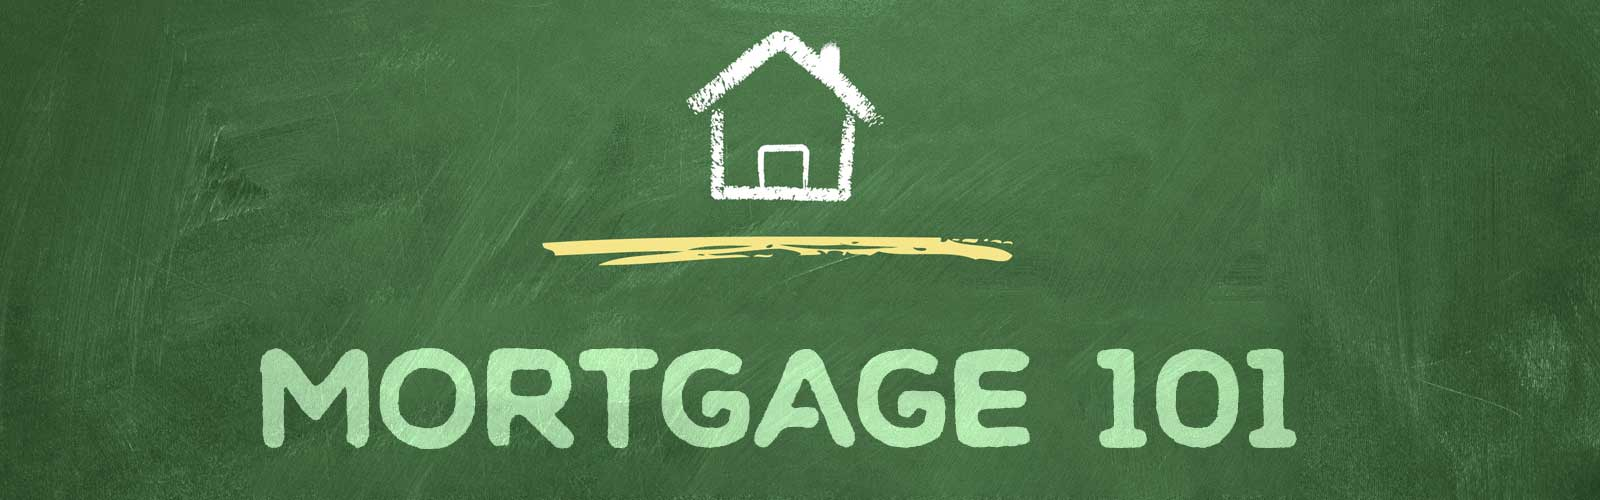 A Home Mortgage Glossary: The Basics